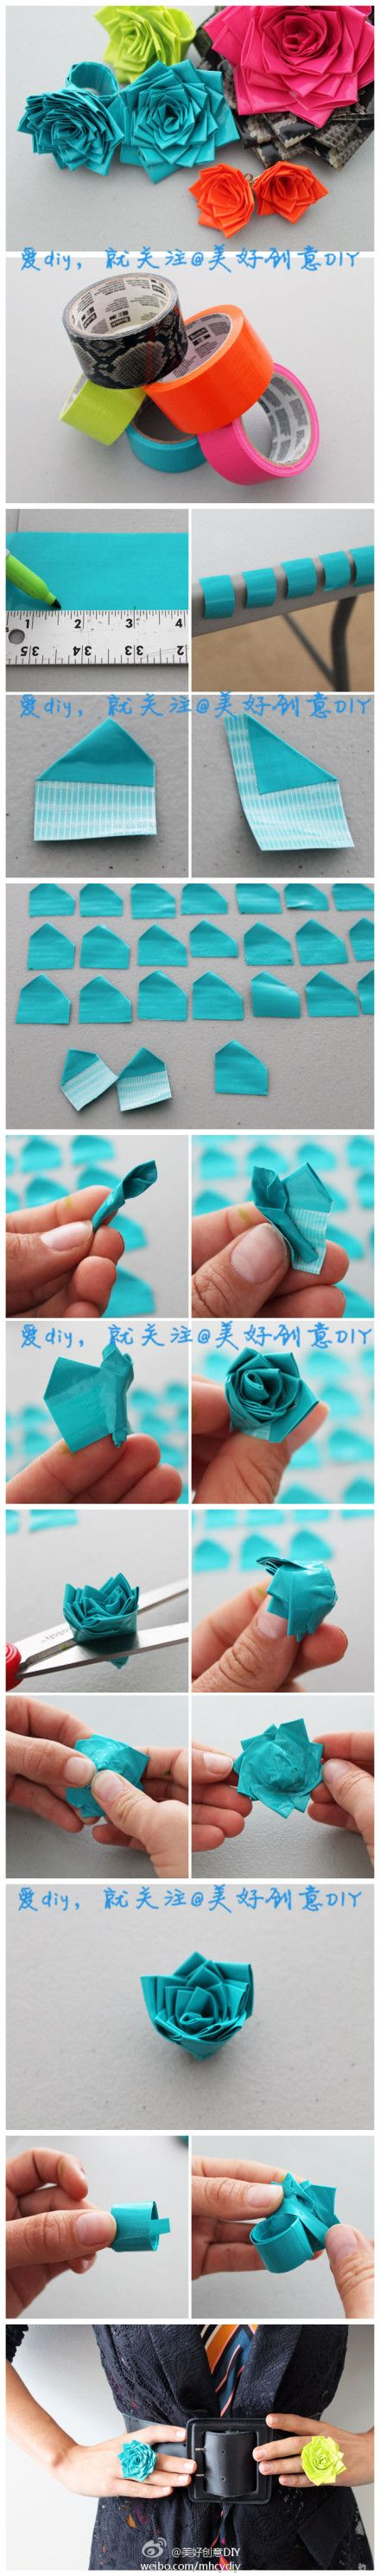 DIY duct tape flower ring